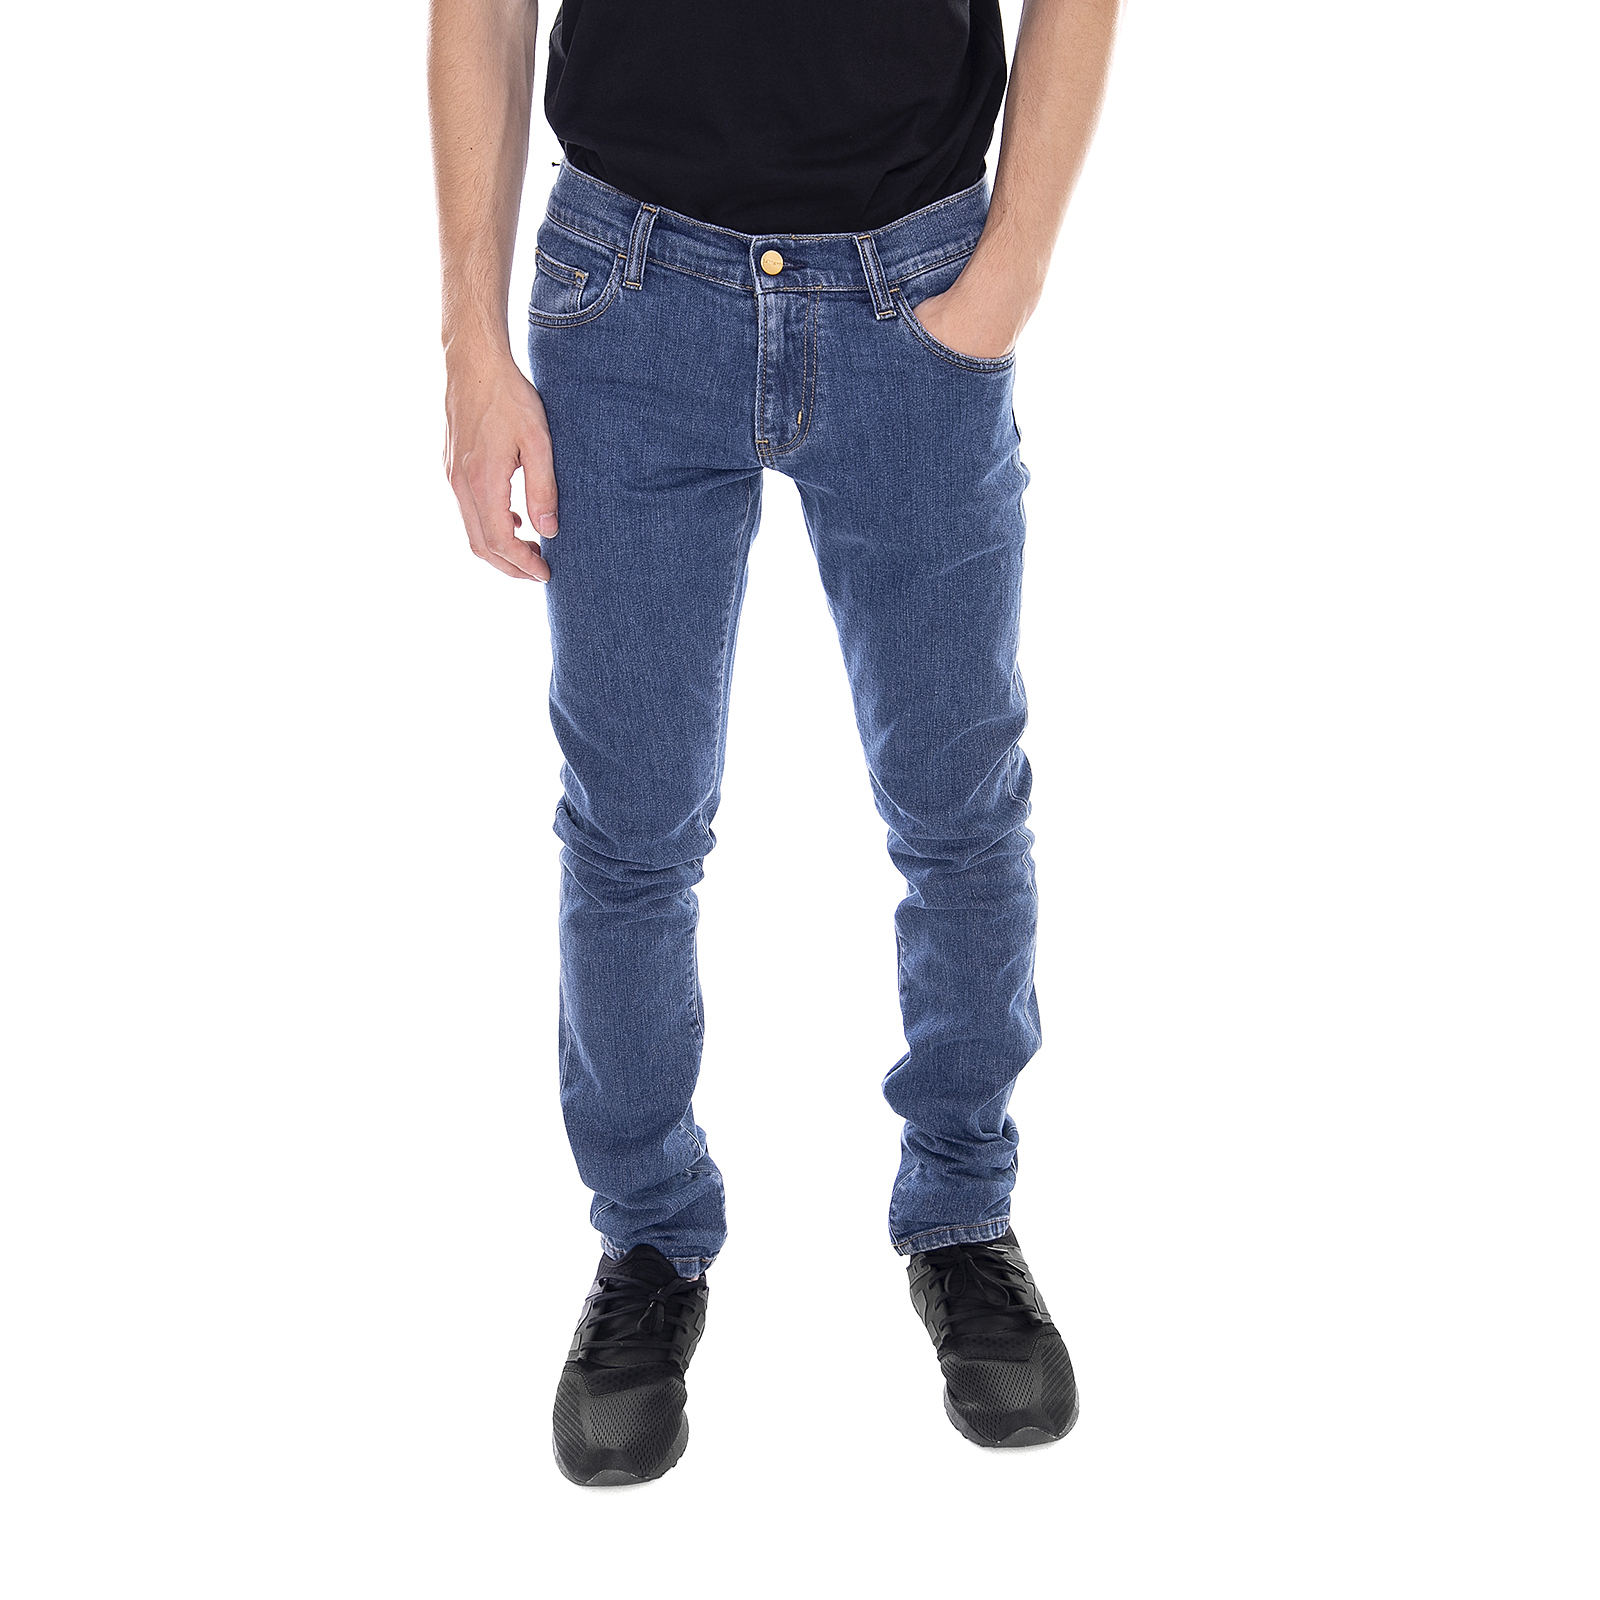 Rebel Blue Dark Denim Pantalone Stonewashed Carhartt EqW60xY